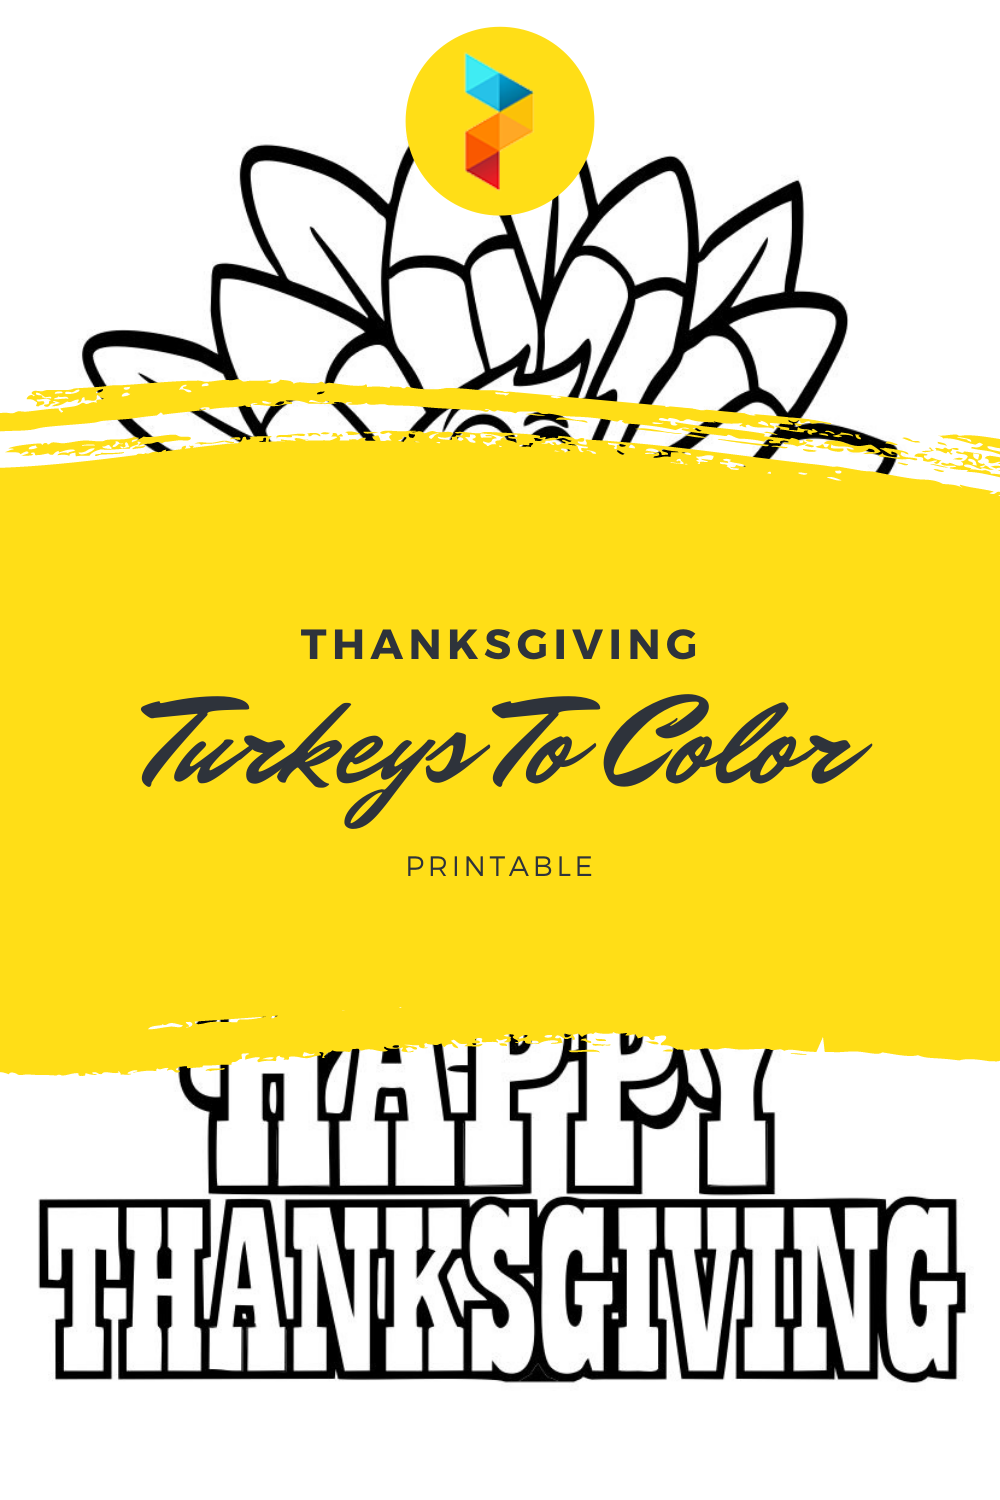 Thanksgiving Turkeys To Color Printable